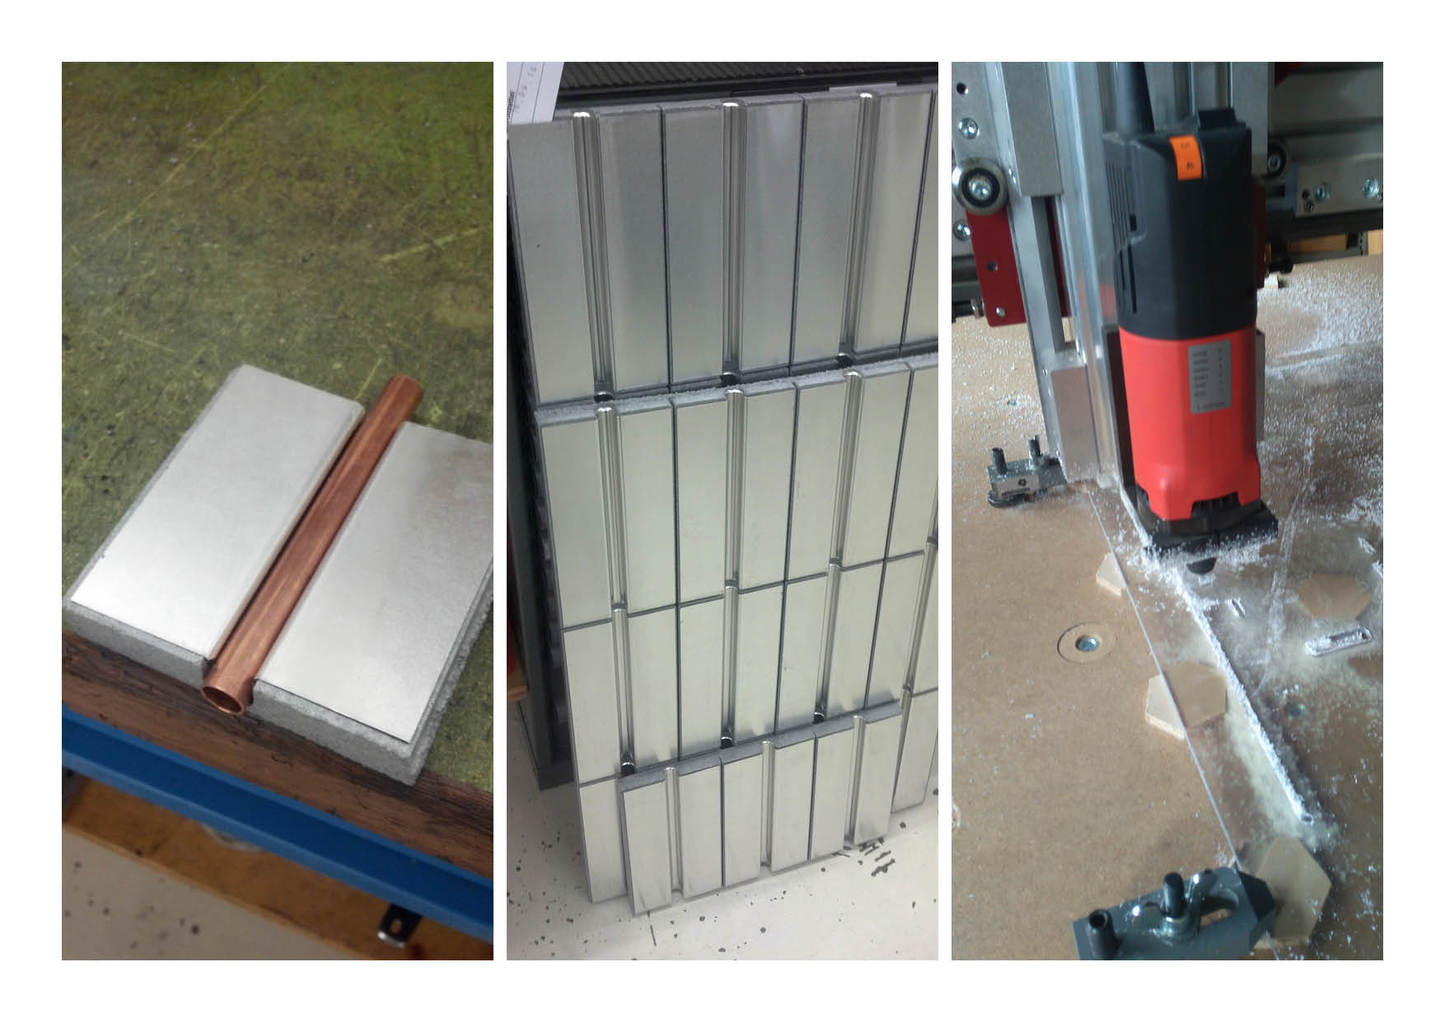 20170224 cooling plate and tube collage.jpg